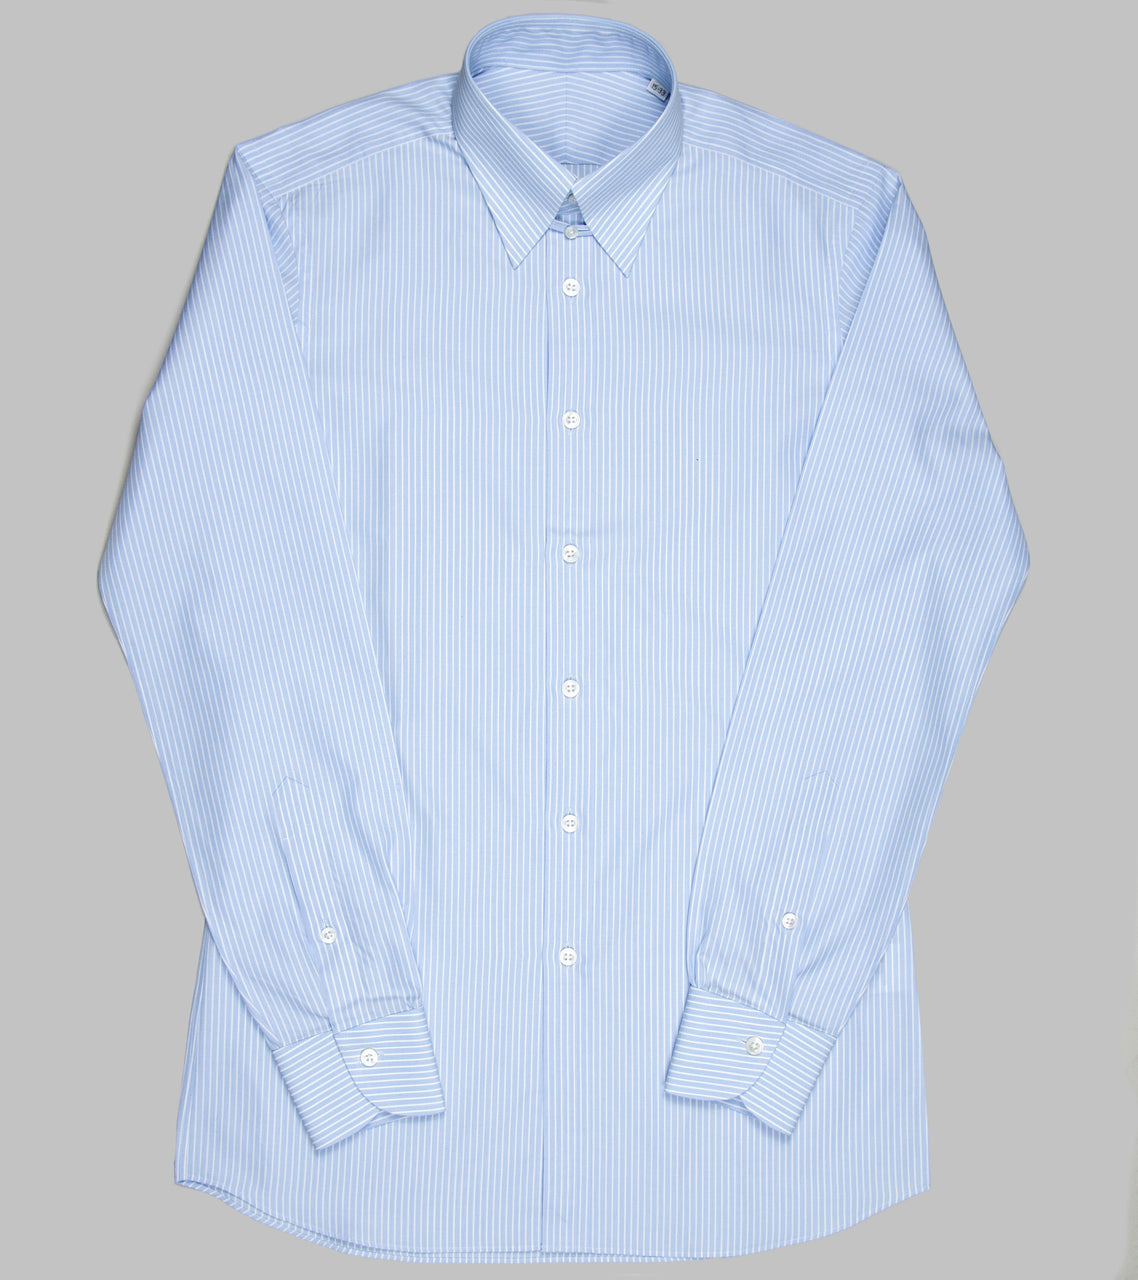 Bryceland's Tab Collar Striped Shirt Blue